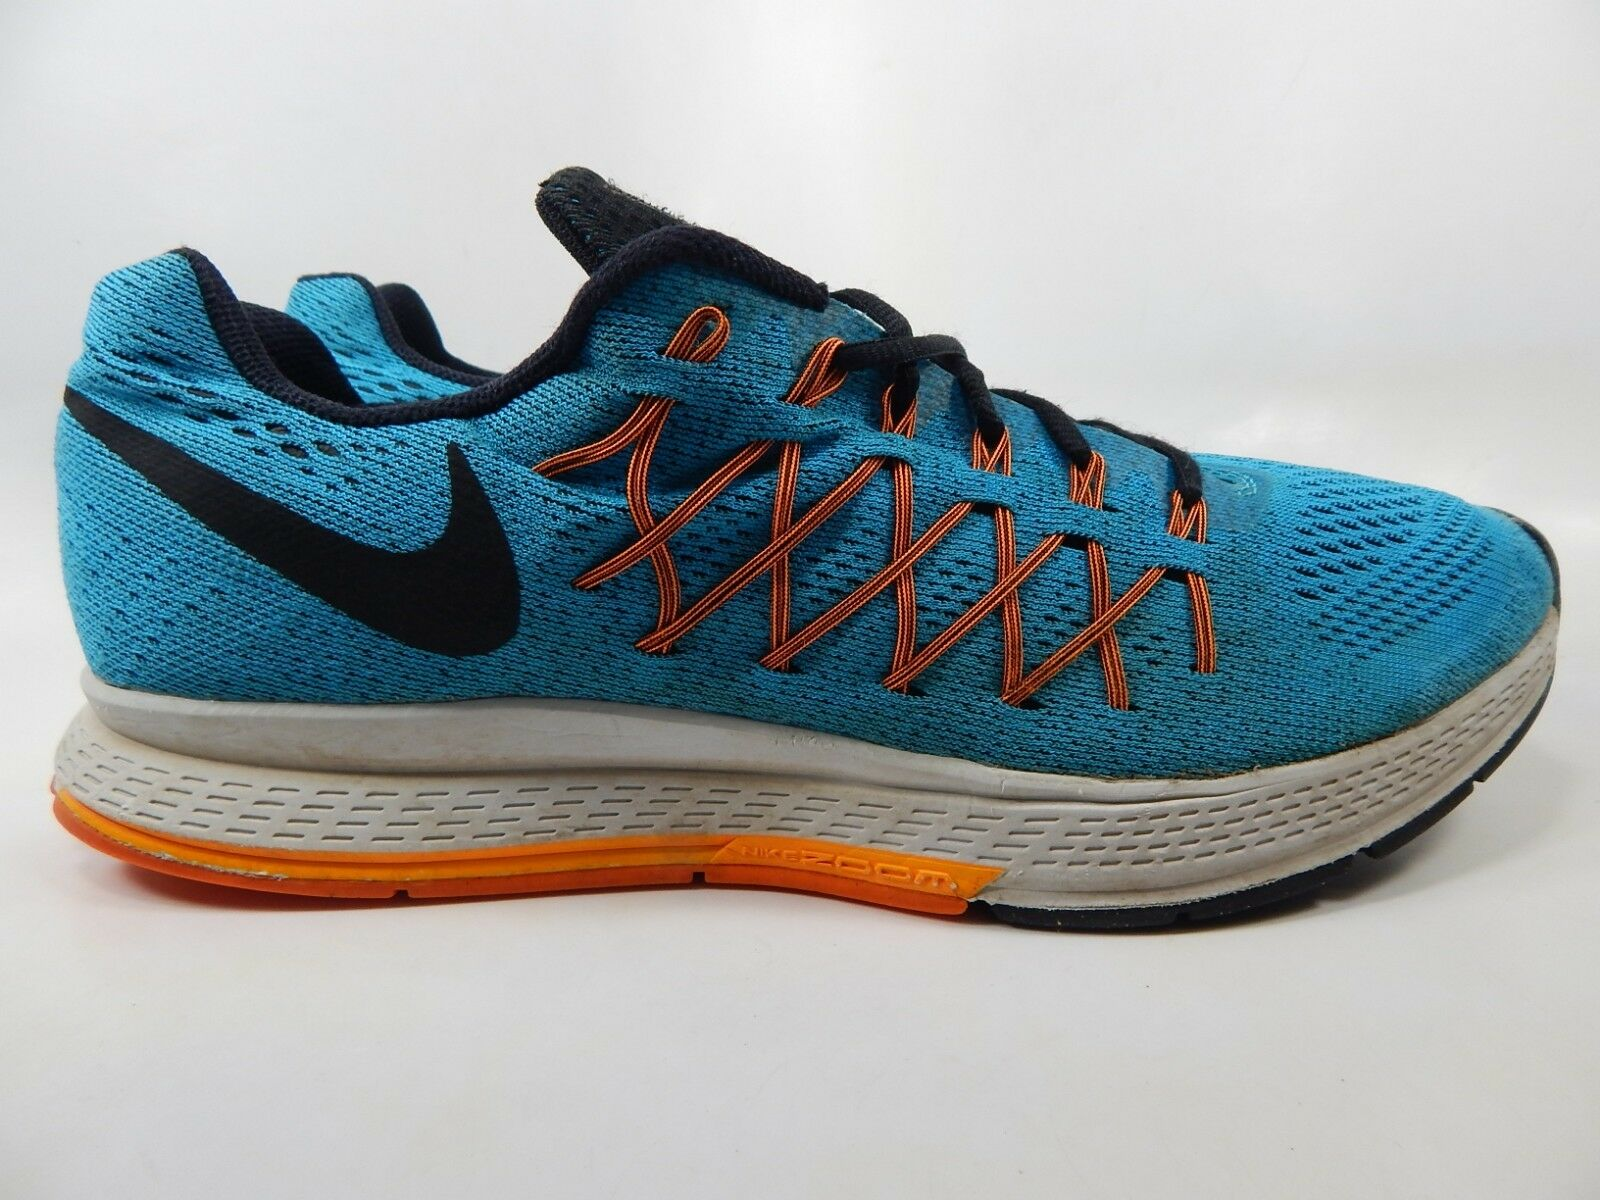 b0138b1f53f Nike Air Zoom Pegasus 32 Blue Orange Mens Running Shoes SNEAKERS ...